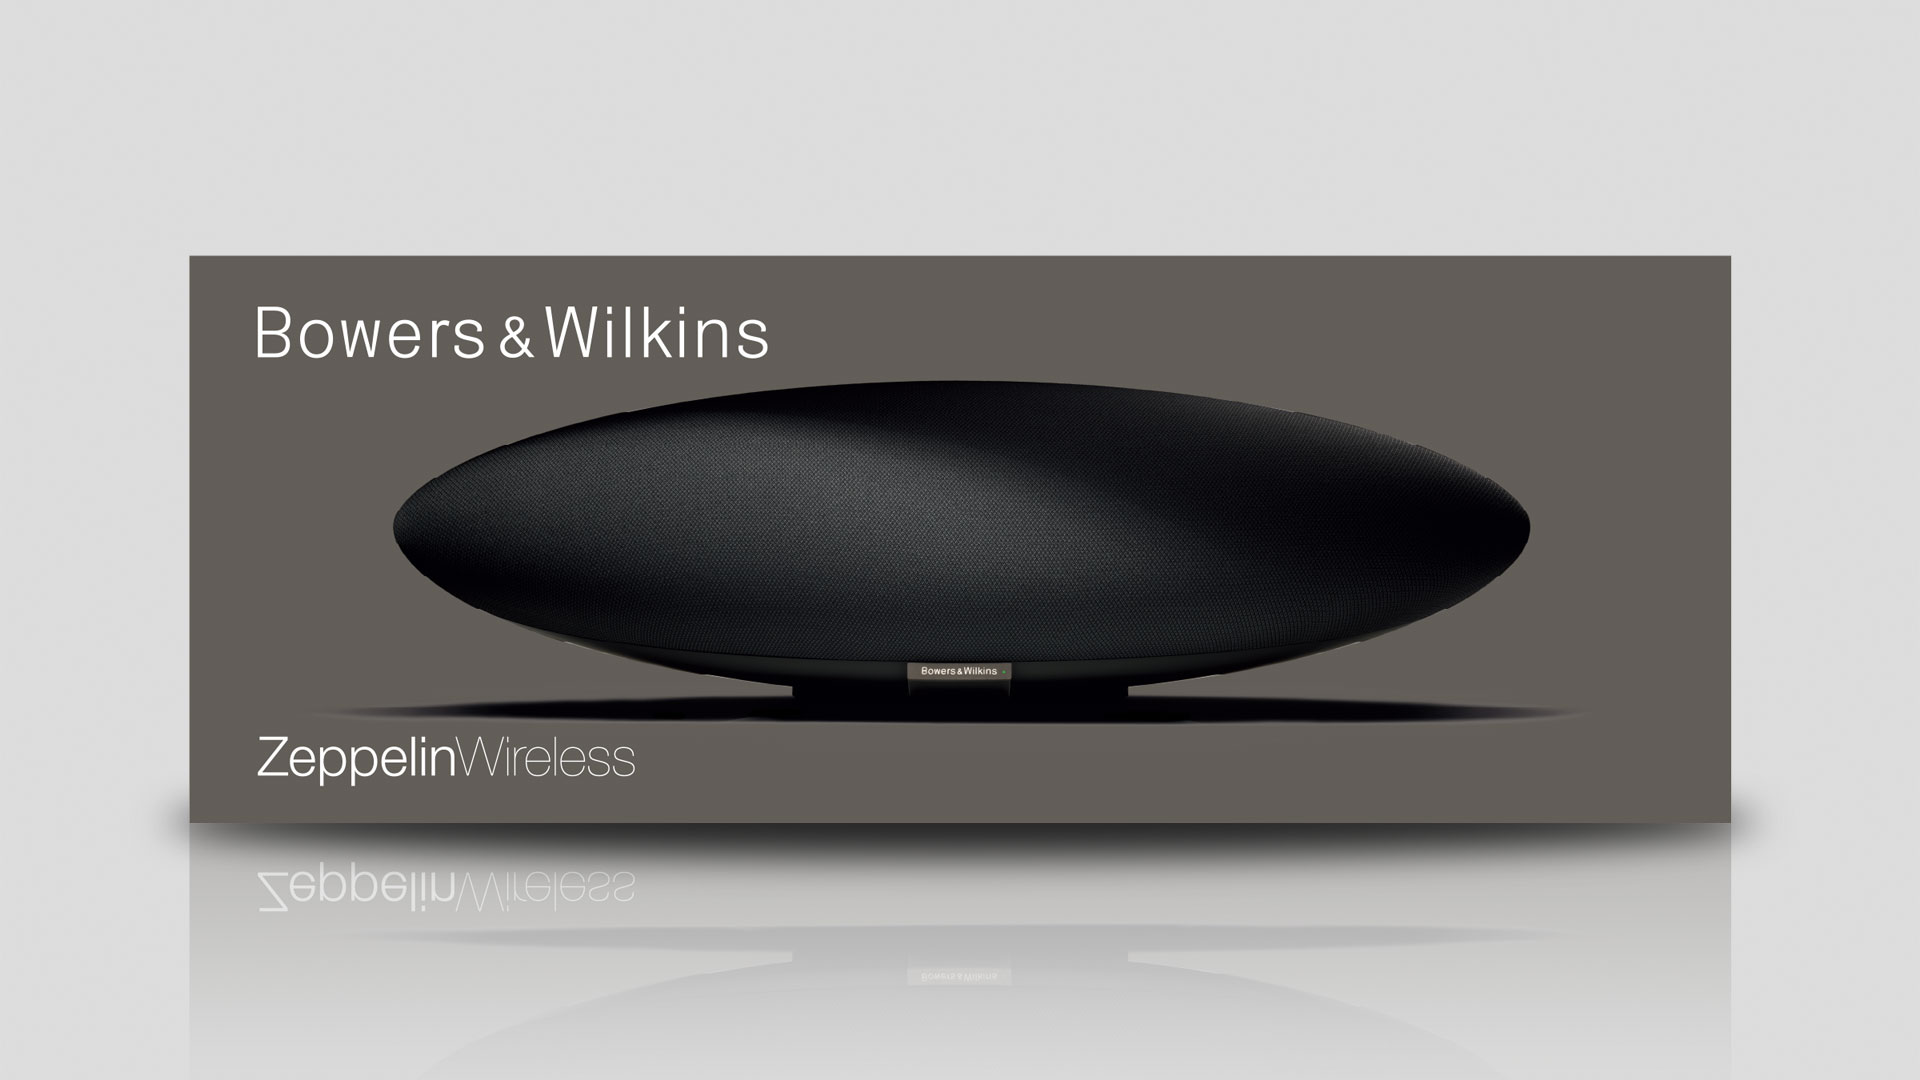 zeppelin_wireless_01